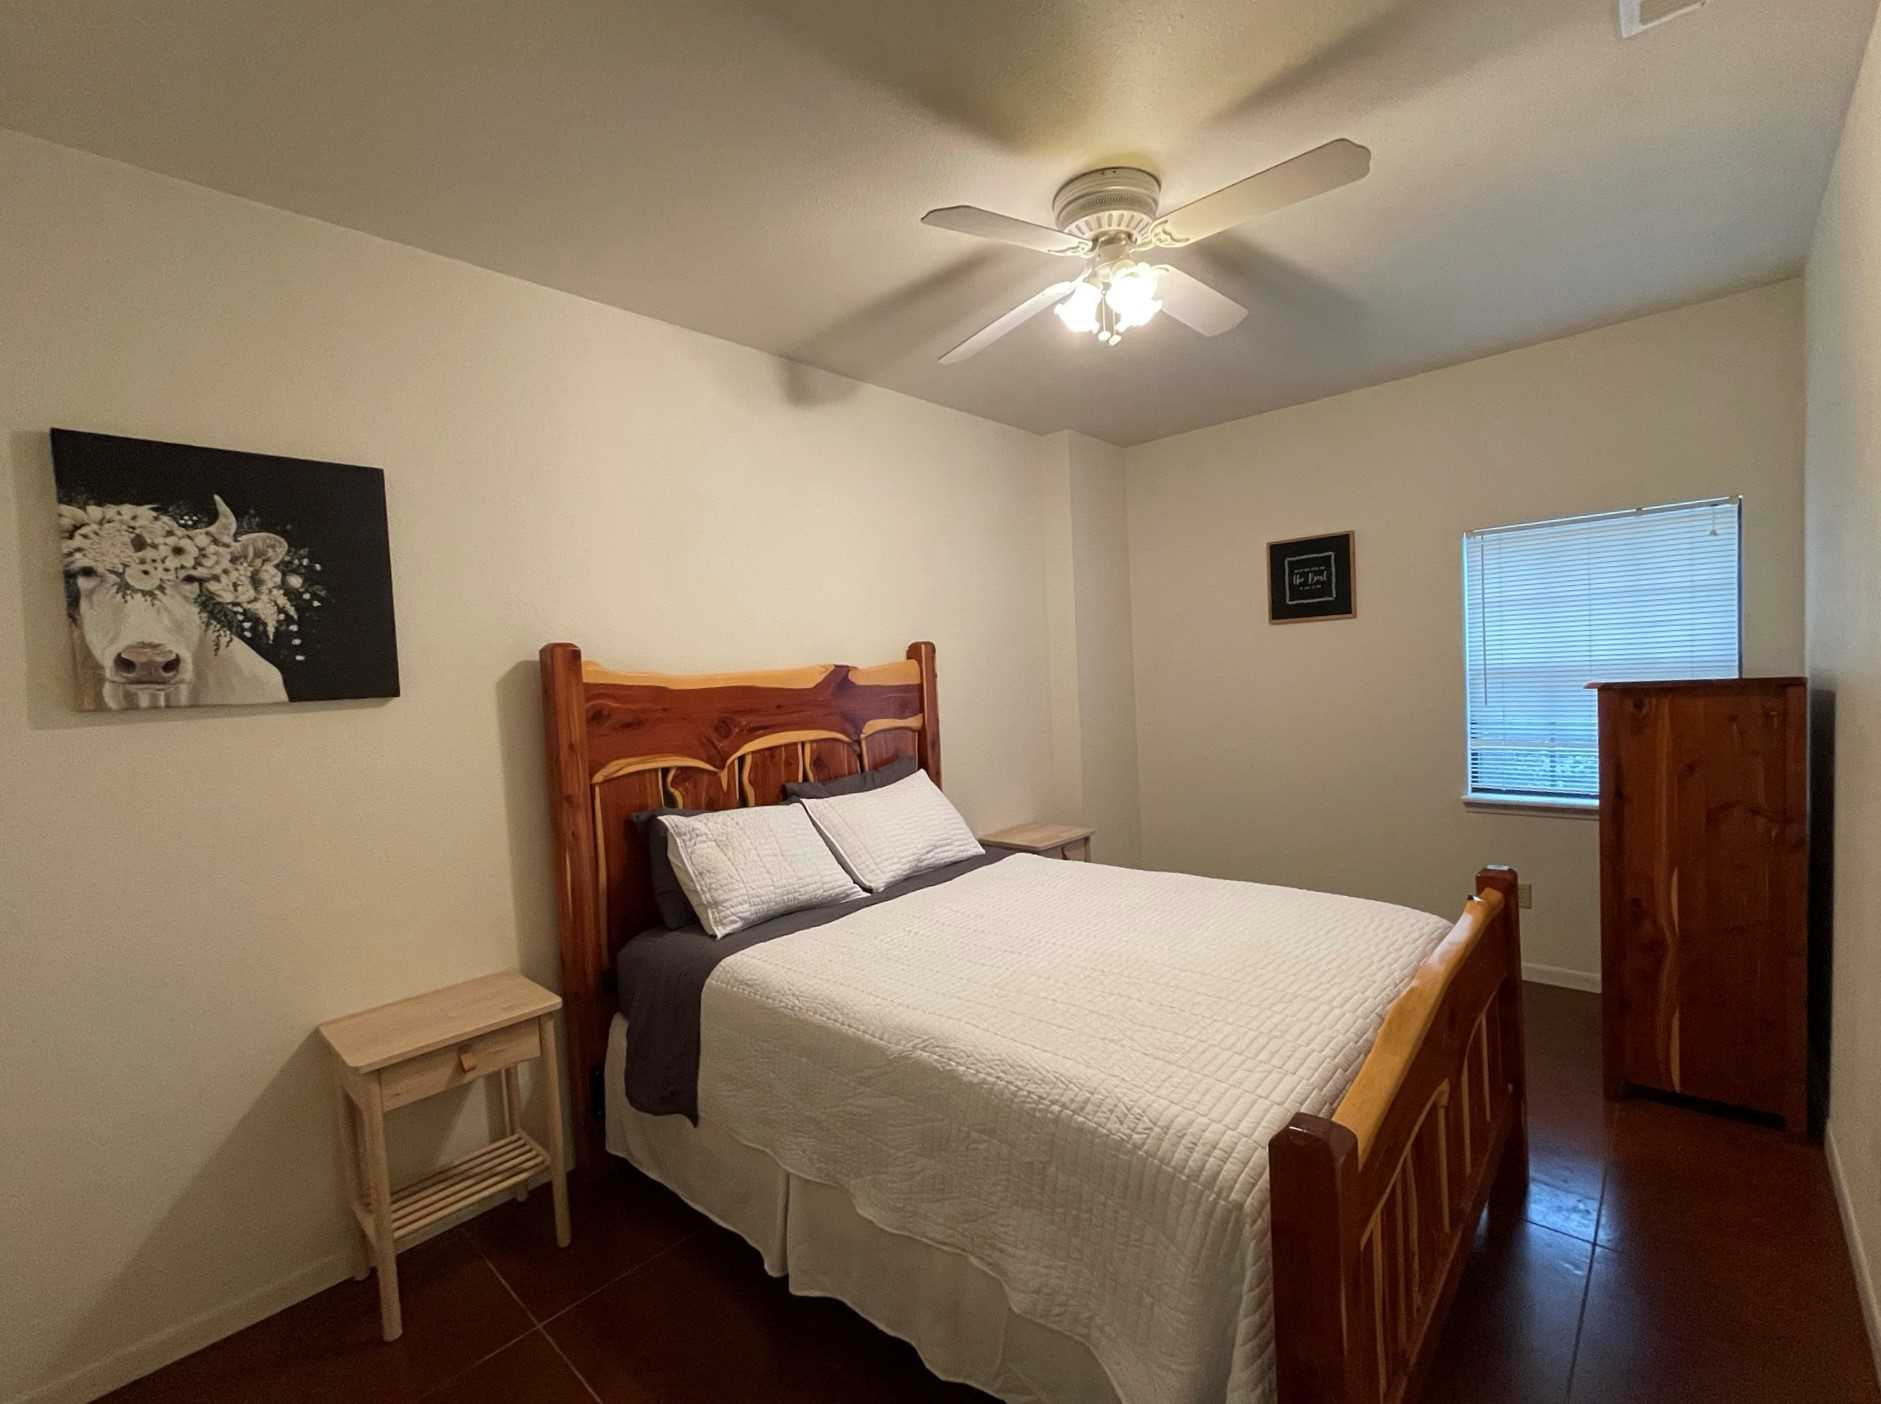 Got a couple in your crew who'd like some privacy? This bedroom comes with a sumptuously comfy queen bed, with complimentary linens, of course!